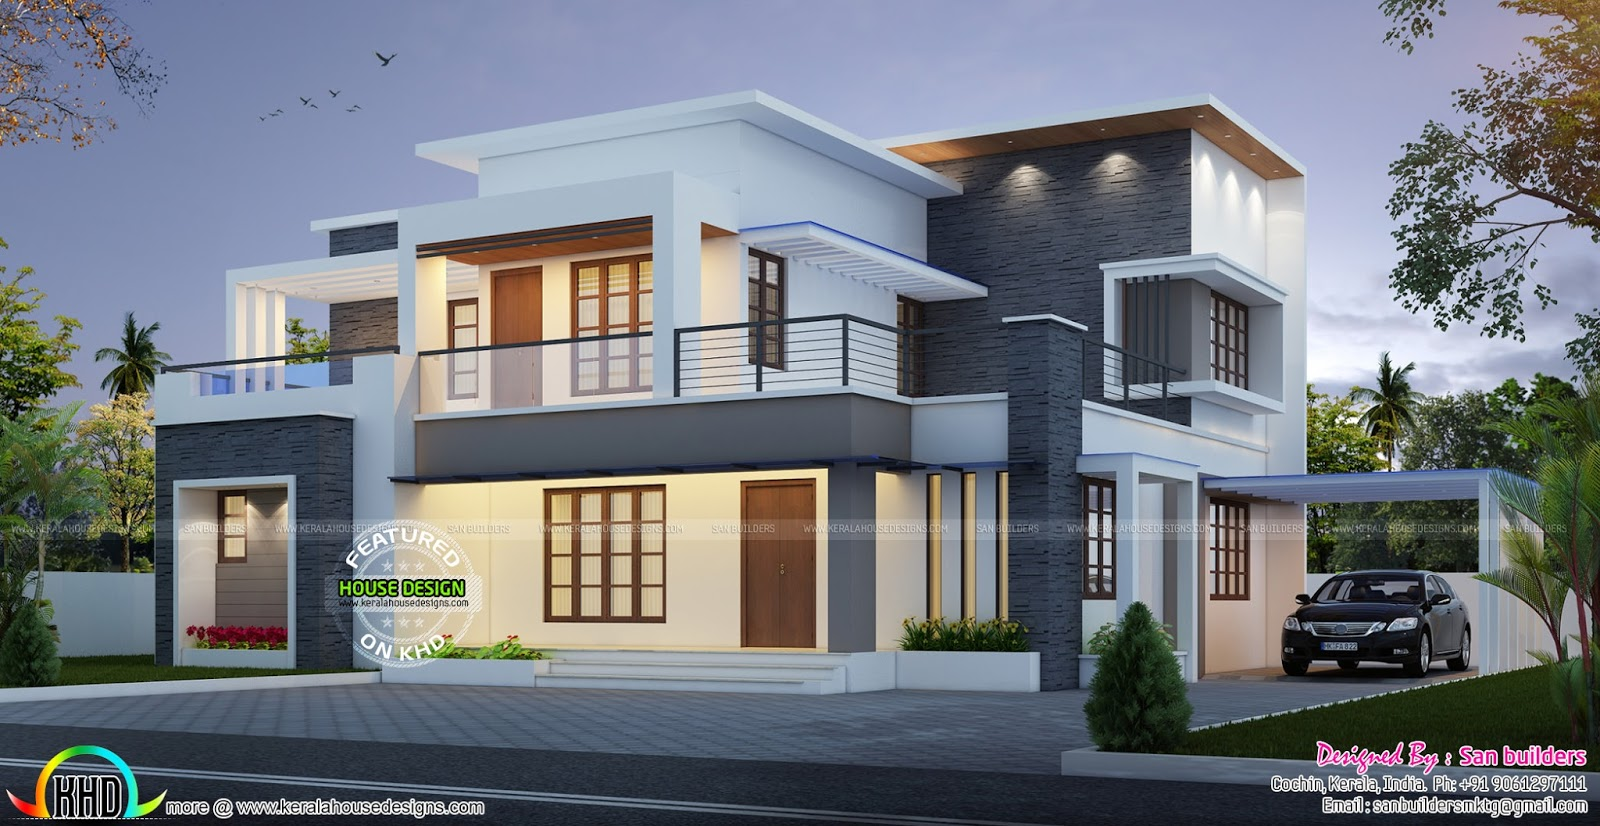 House plan and elevation by san builders kerala home for Kerala house plans and elevations